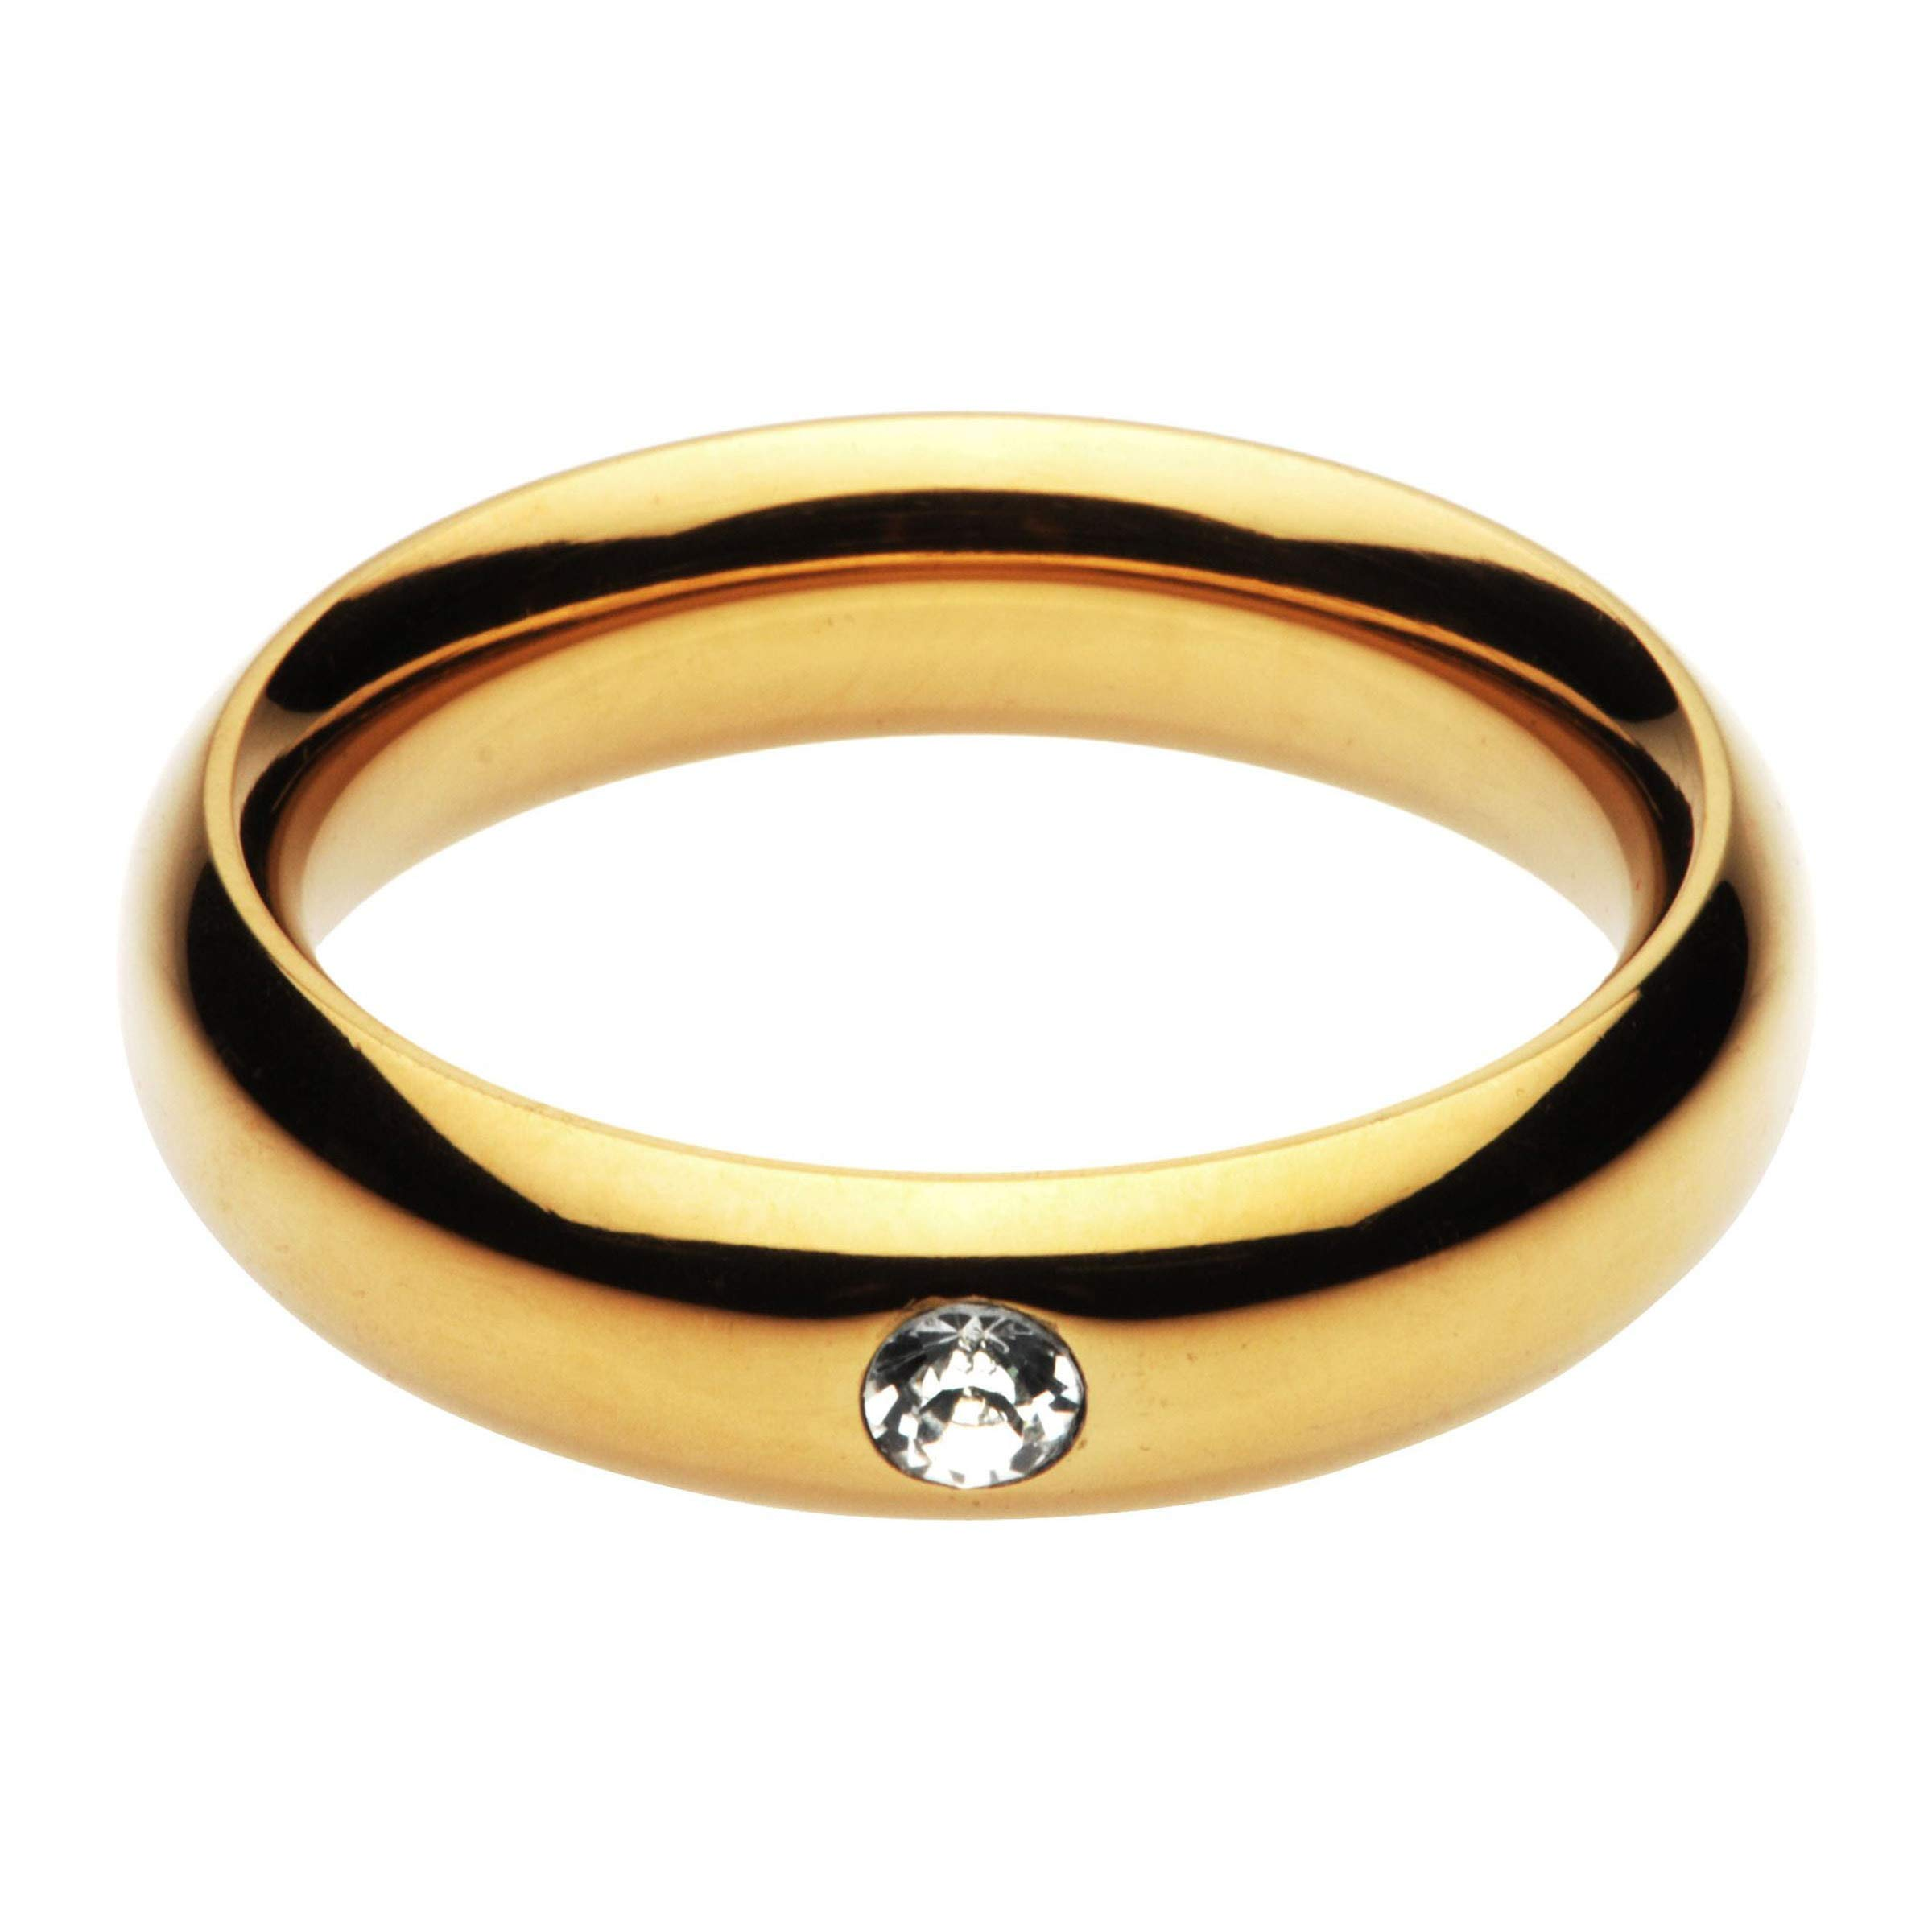 Master Series Kings Diamond Crown Cock Ring, 1.75 Inch by Master Series